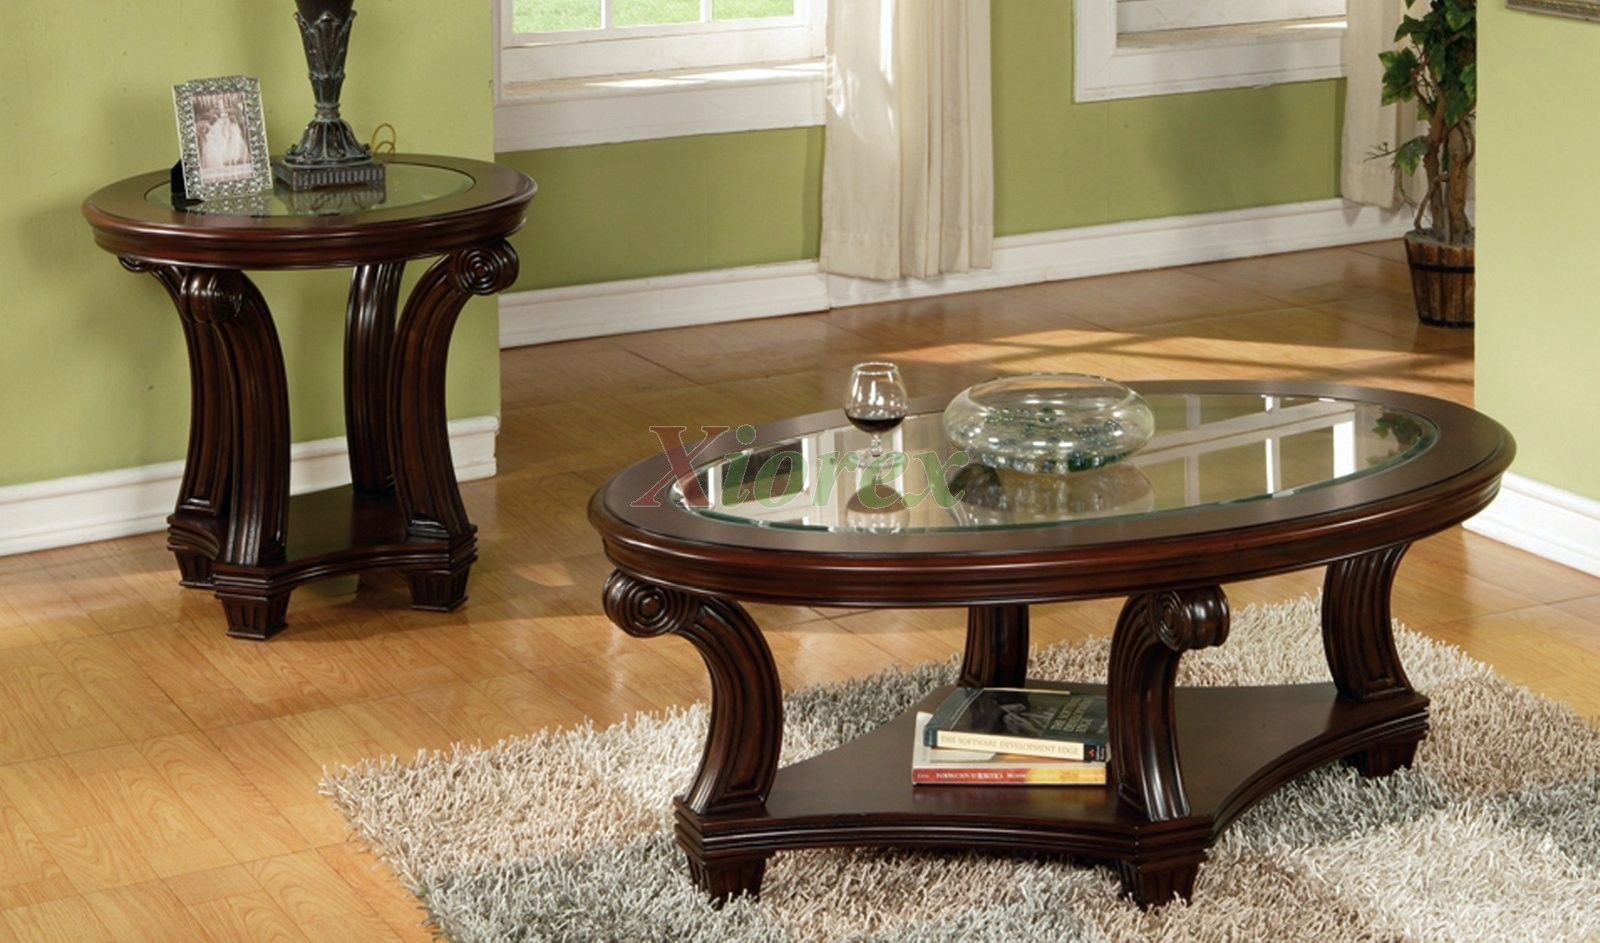 Glass Coffee And End Tables Furniture Of America Carnes Dark Cherry 3 Piece Accent Table Set (Image 5 of 9)